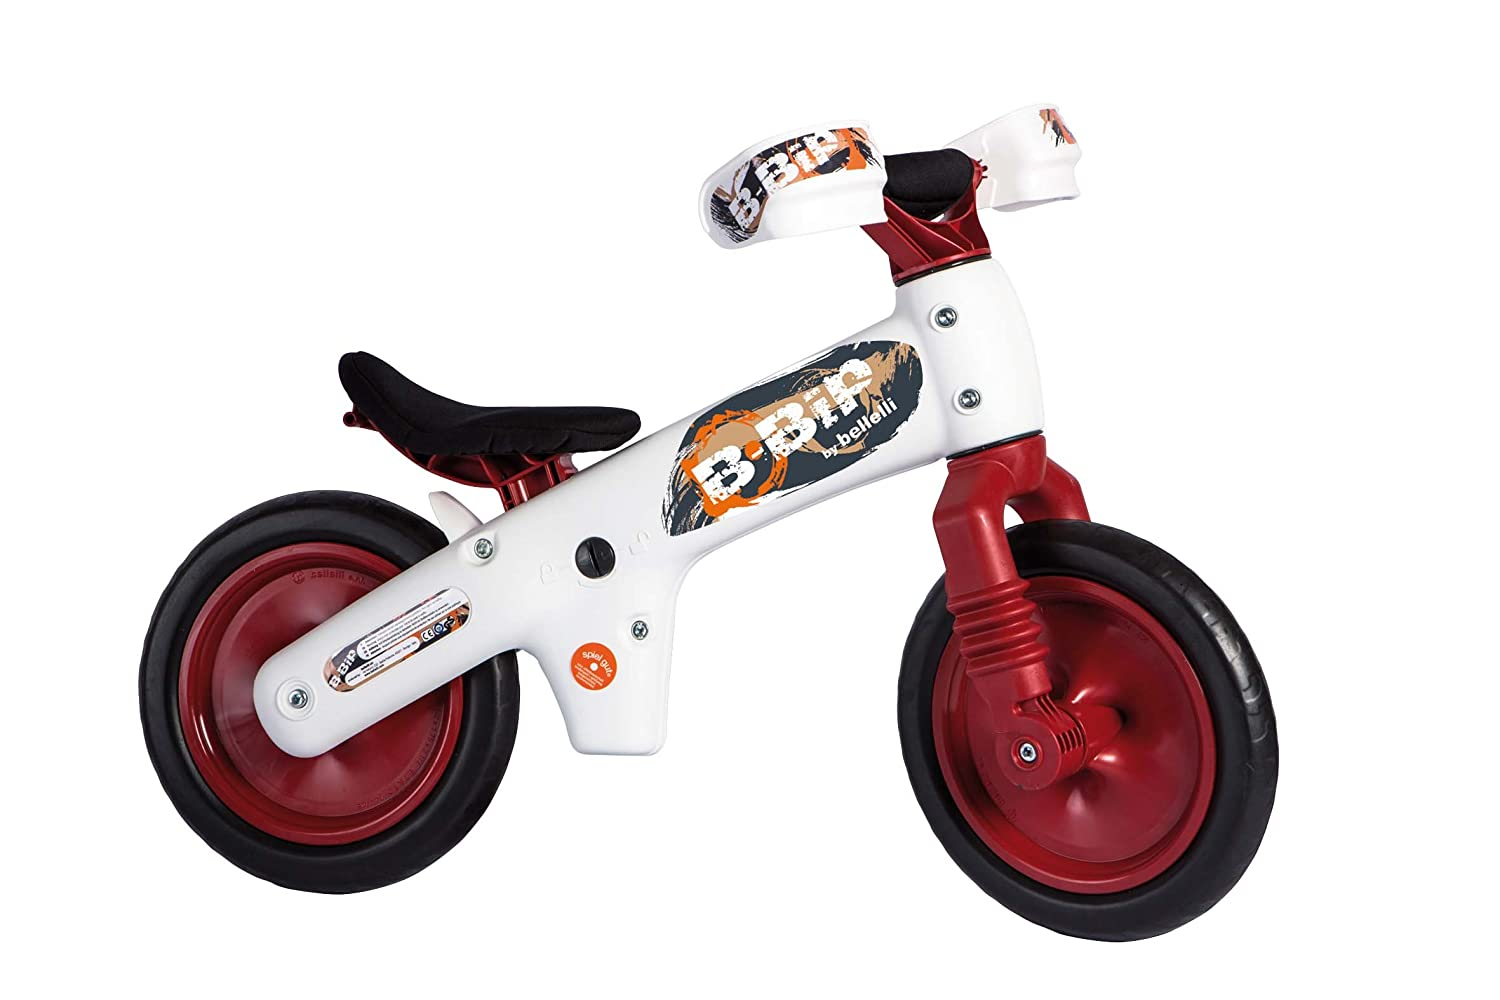 Bellelli Balance Bike with Adjustable Seat - for Ages 2 to 5 years